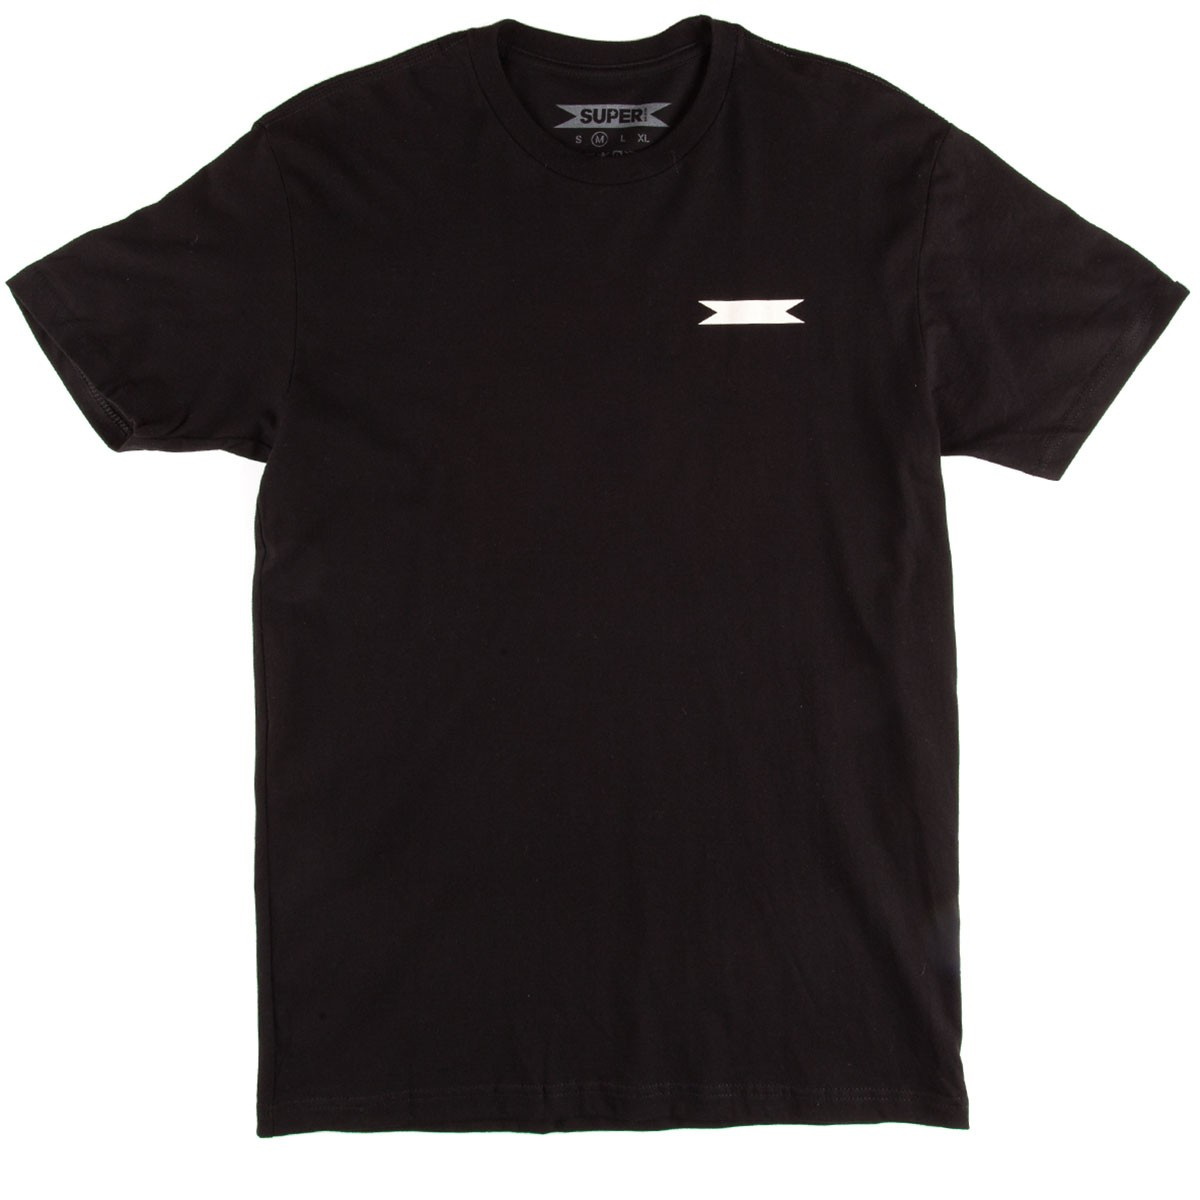 SUPERbrand Jersey T-Shirt - Black